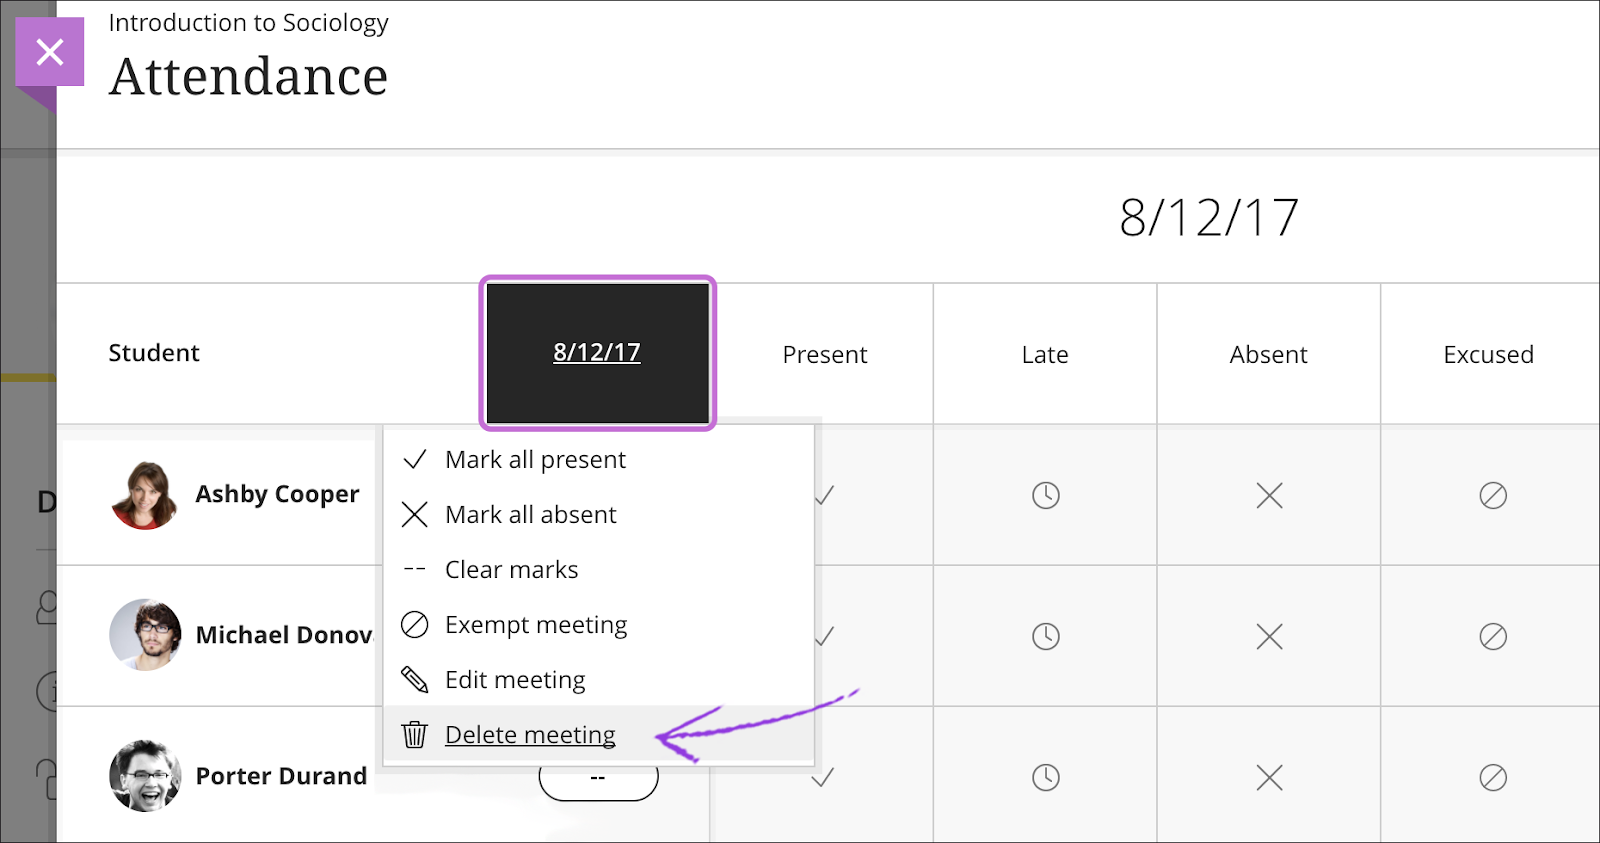 Image showing how to delete a meeting in meeting view